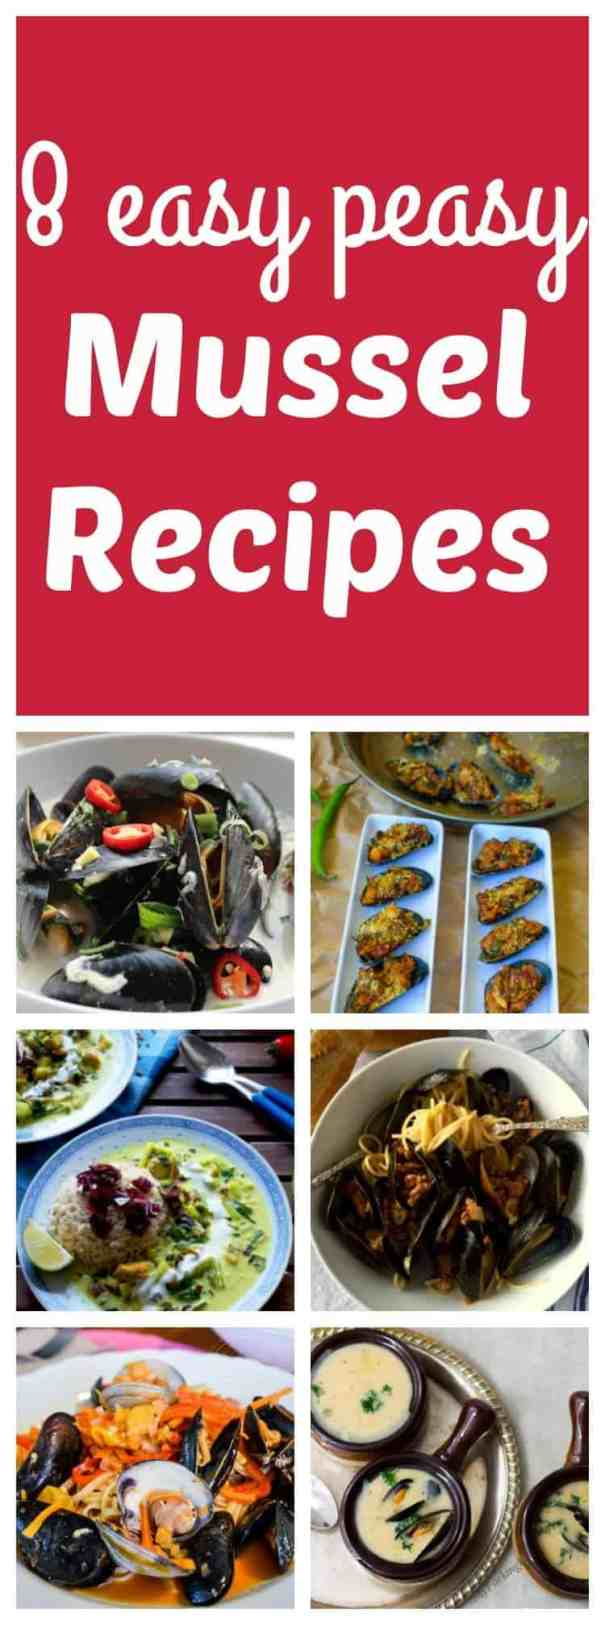 Easy Mussel Recipes